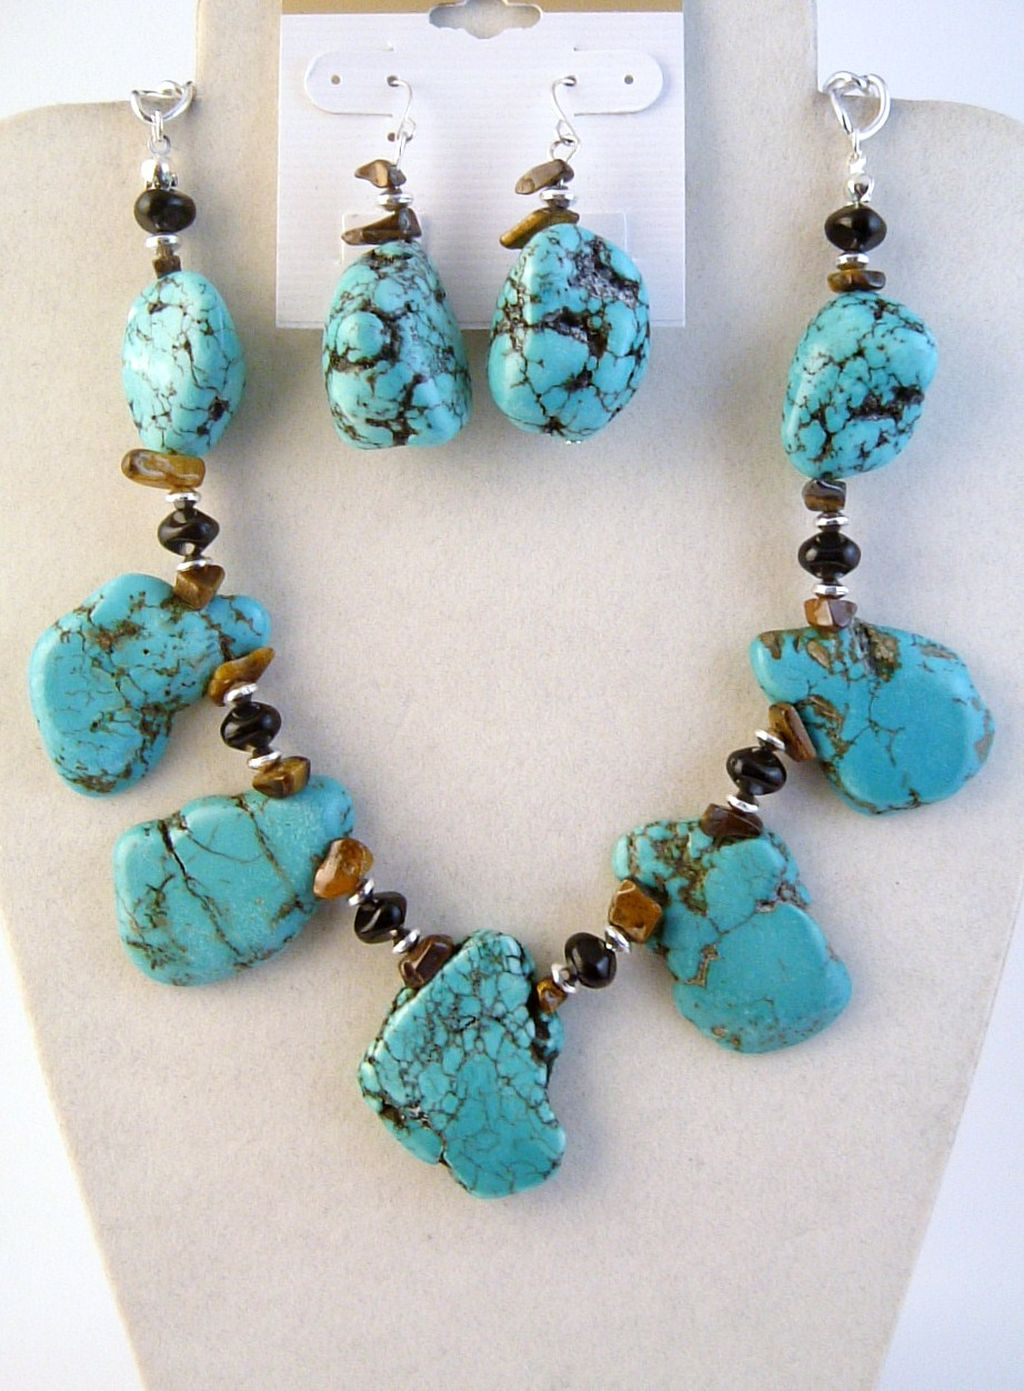 Genuine Large Turquoise Tiger Eye Onyx Stones Necklace Earrings Jewelry Set